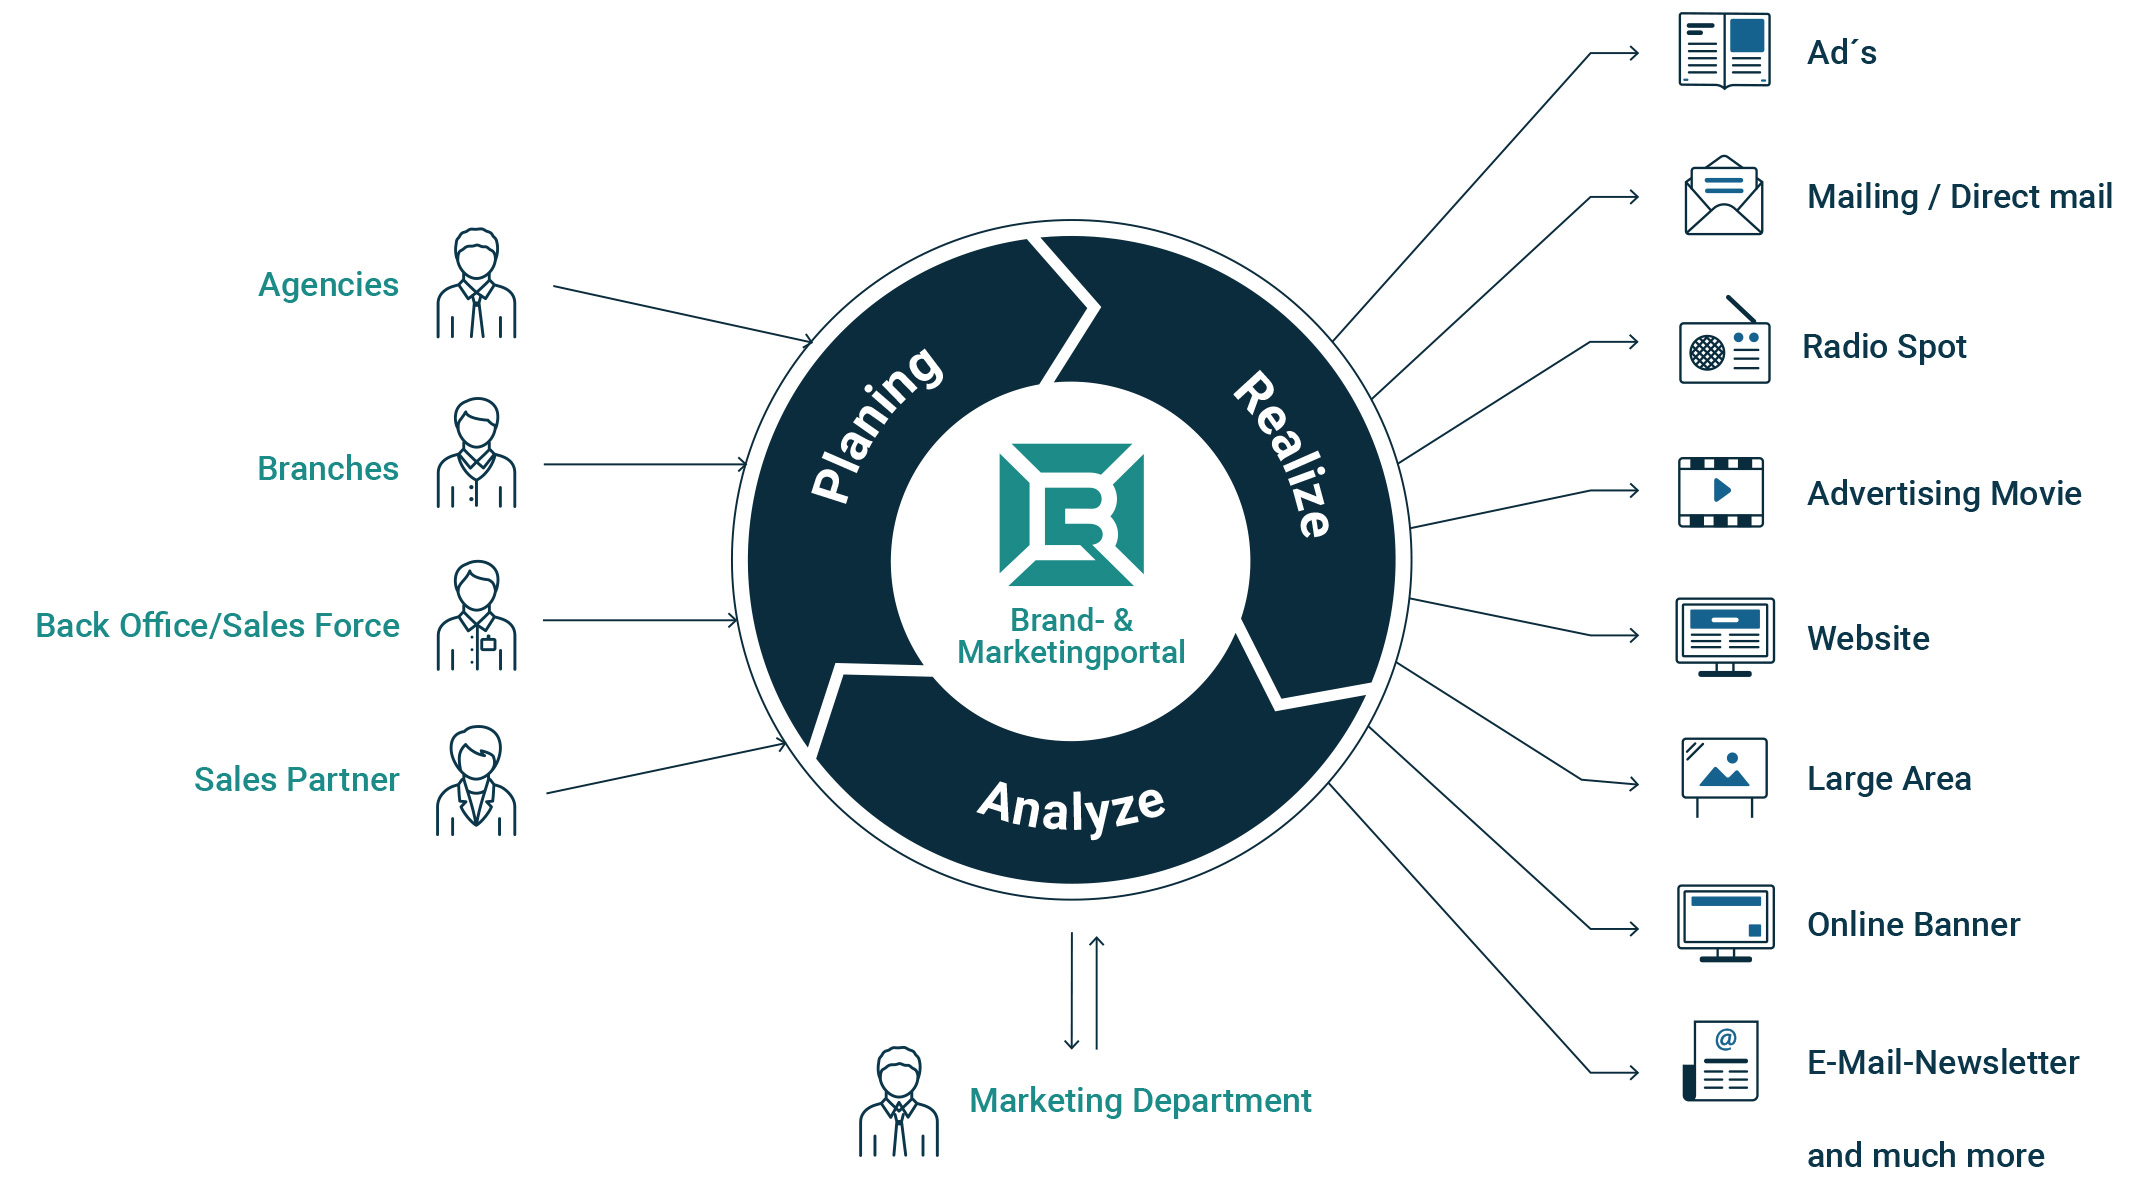 Banks workflow with a marketing portal